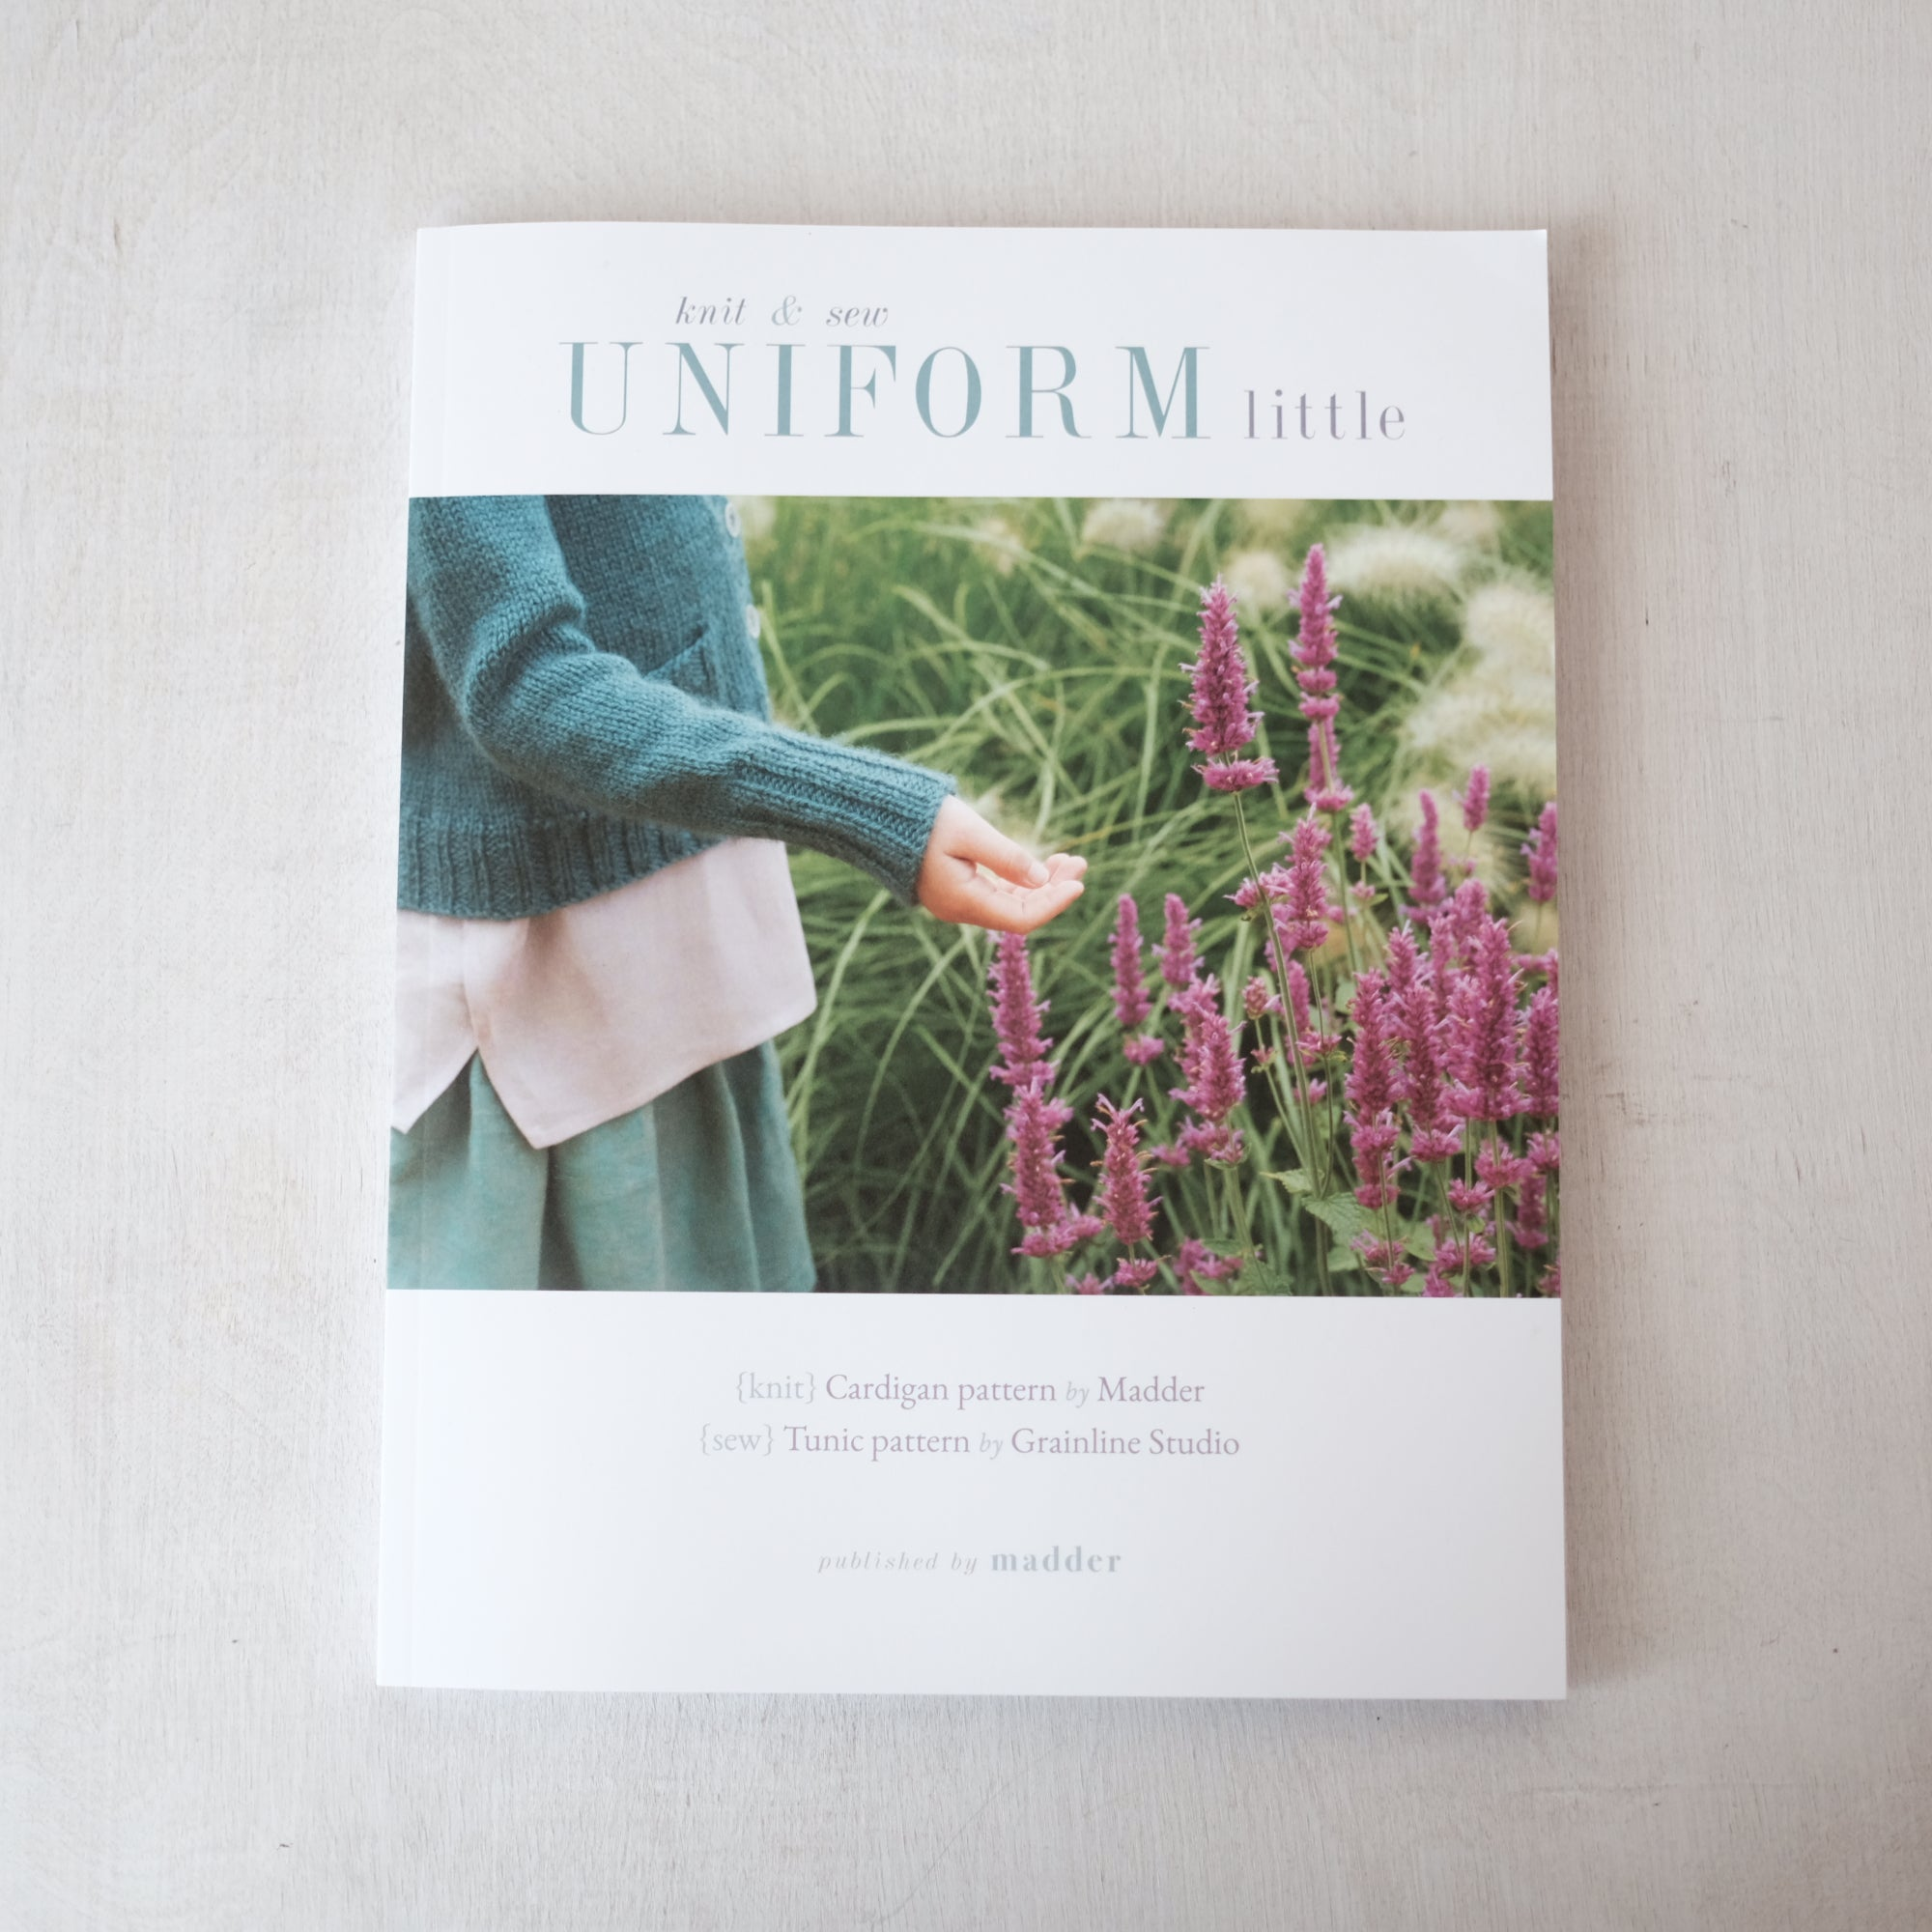 UNIFORM Little Knit & Sew by Carrie Bostick Hoge and Jen Beeman